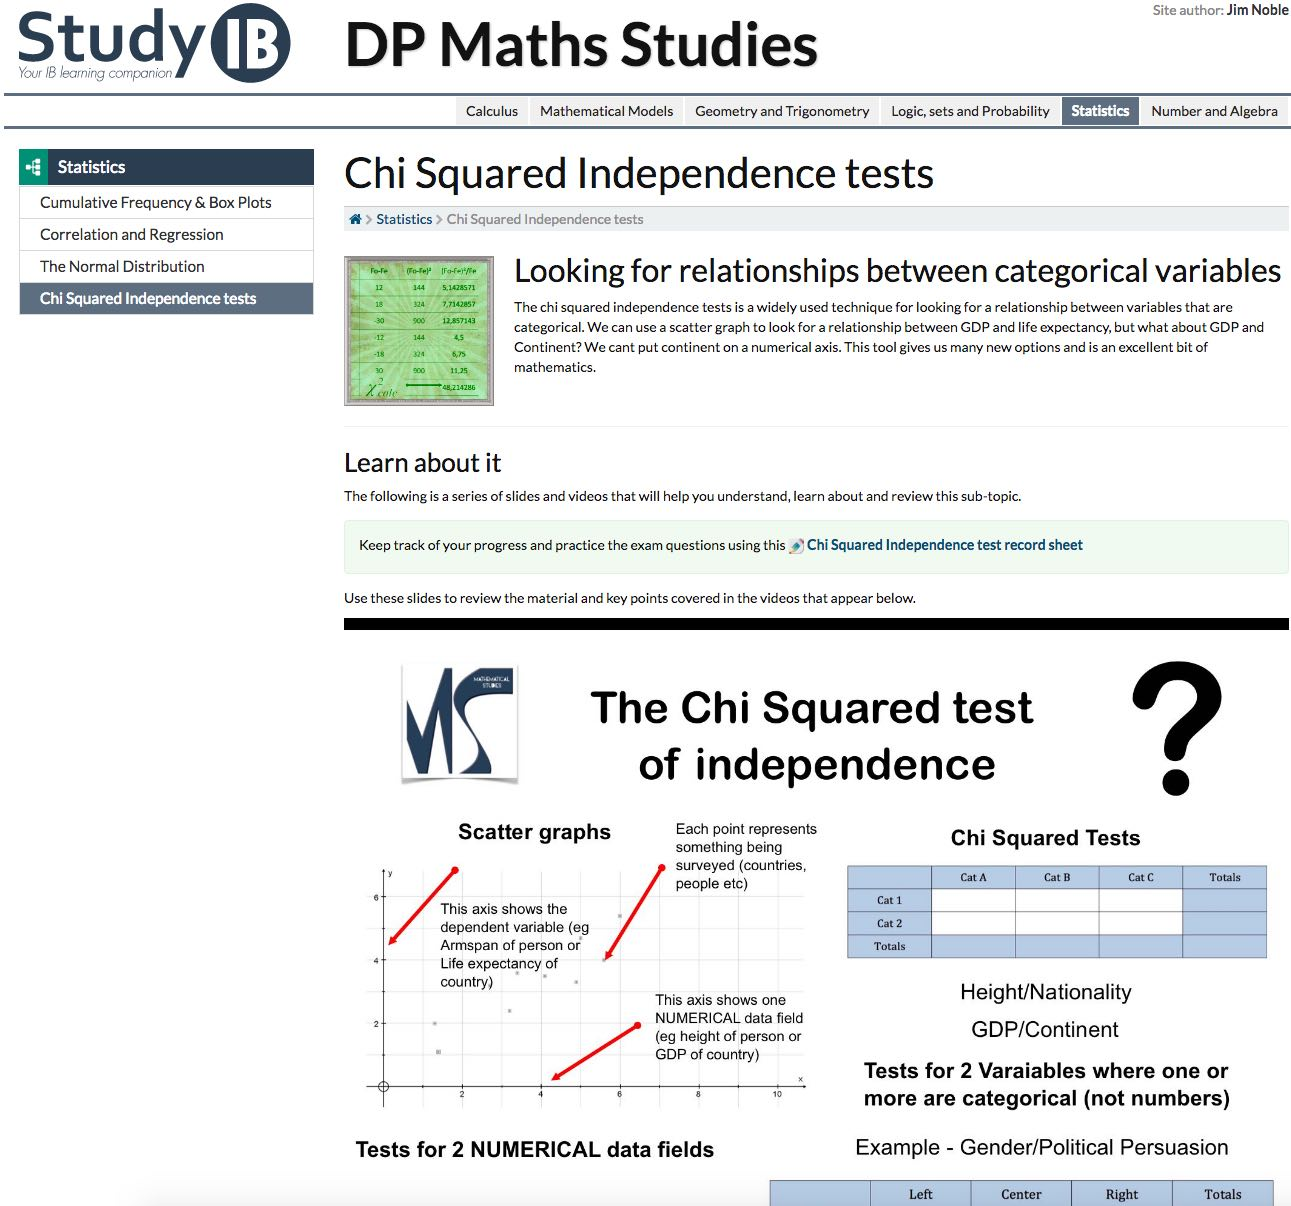 IB Maths Studies / Applications: StudyIB.net